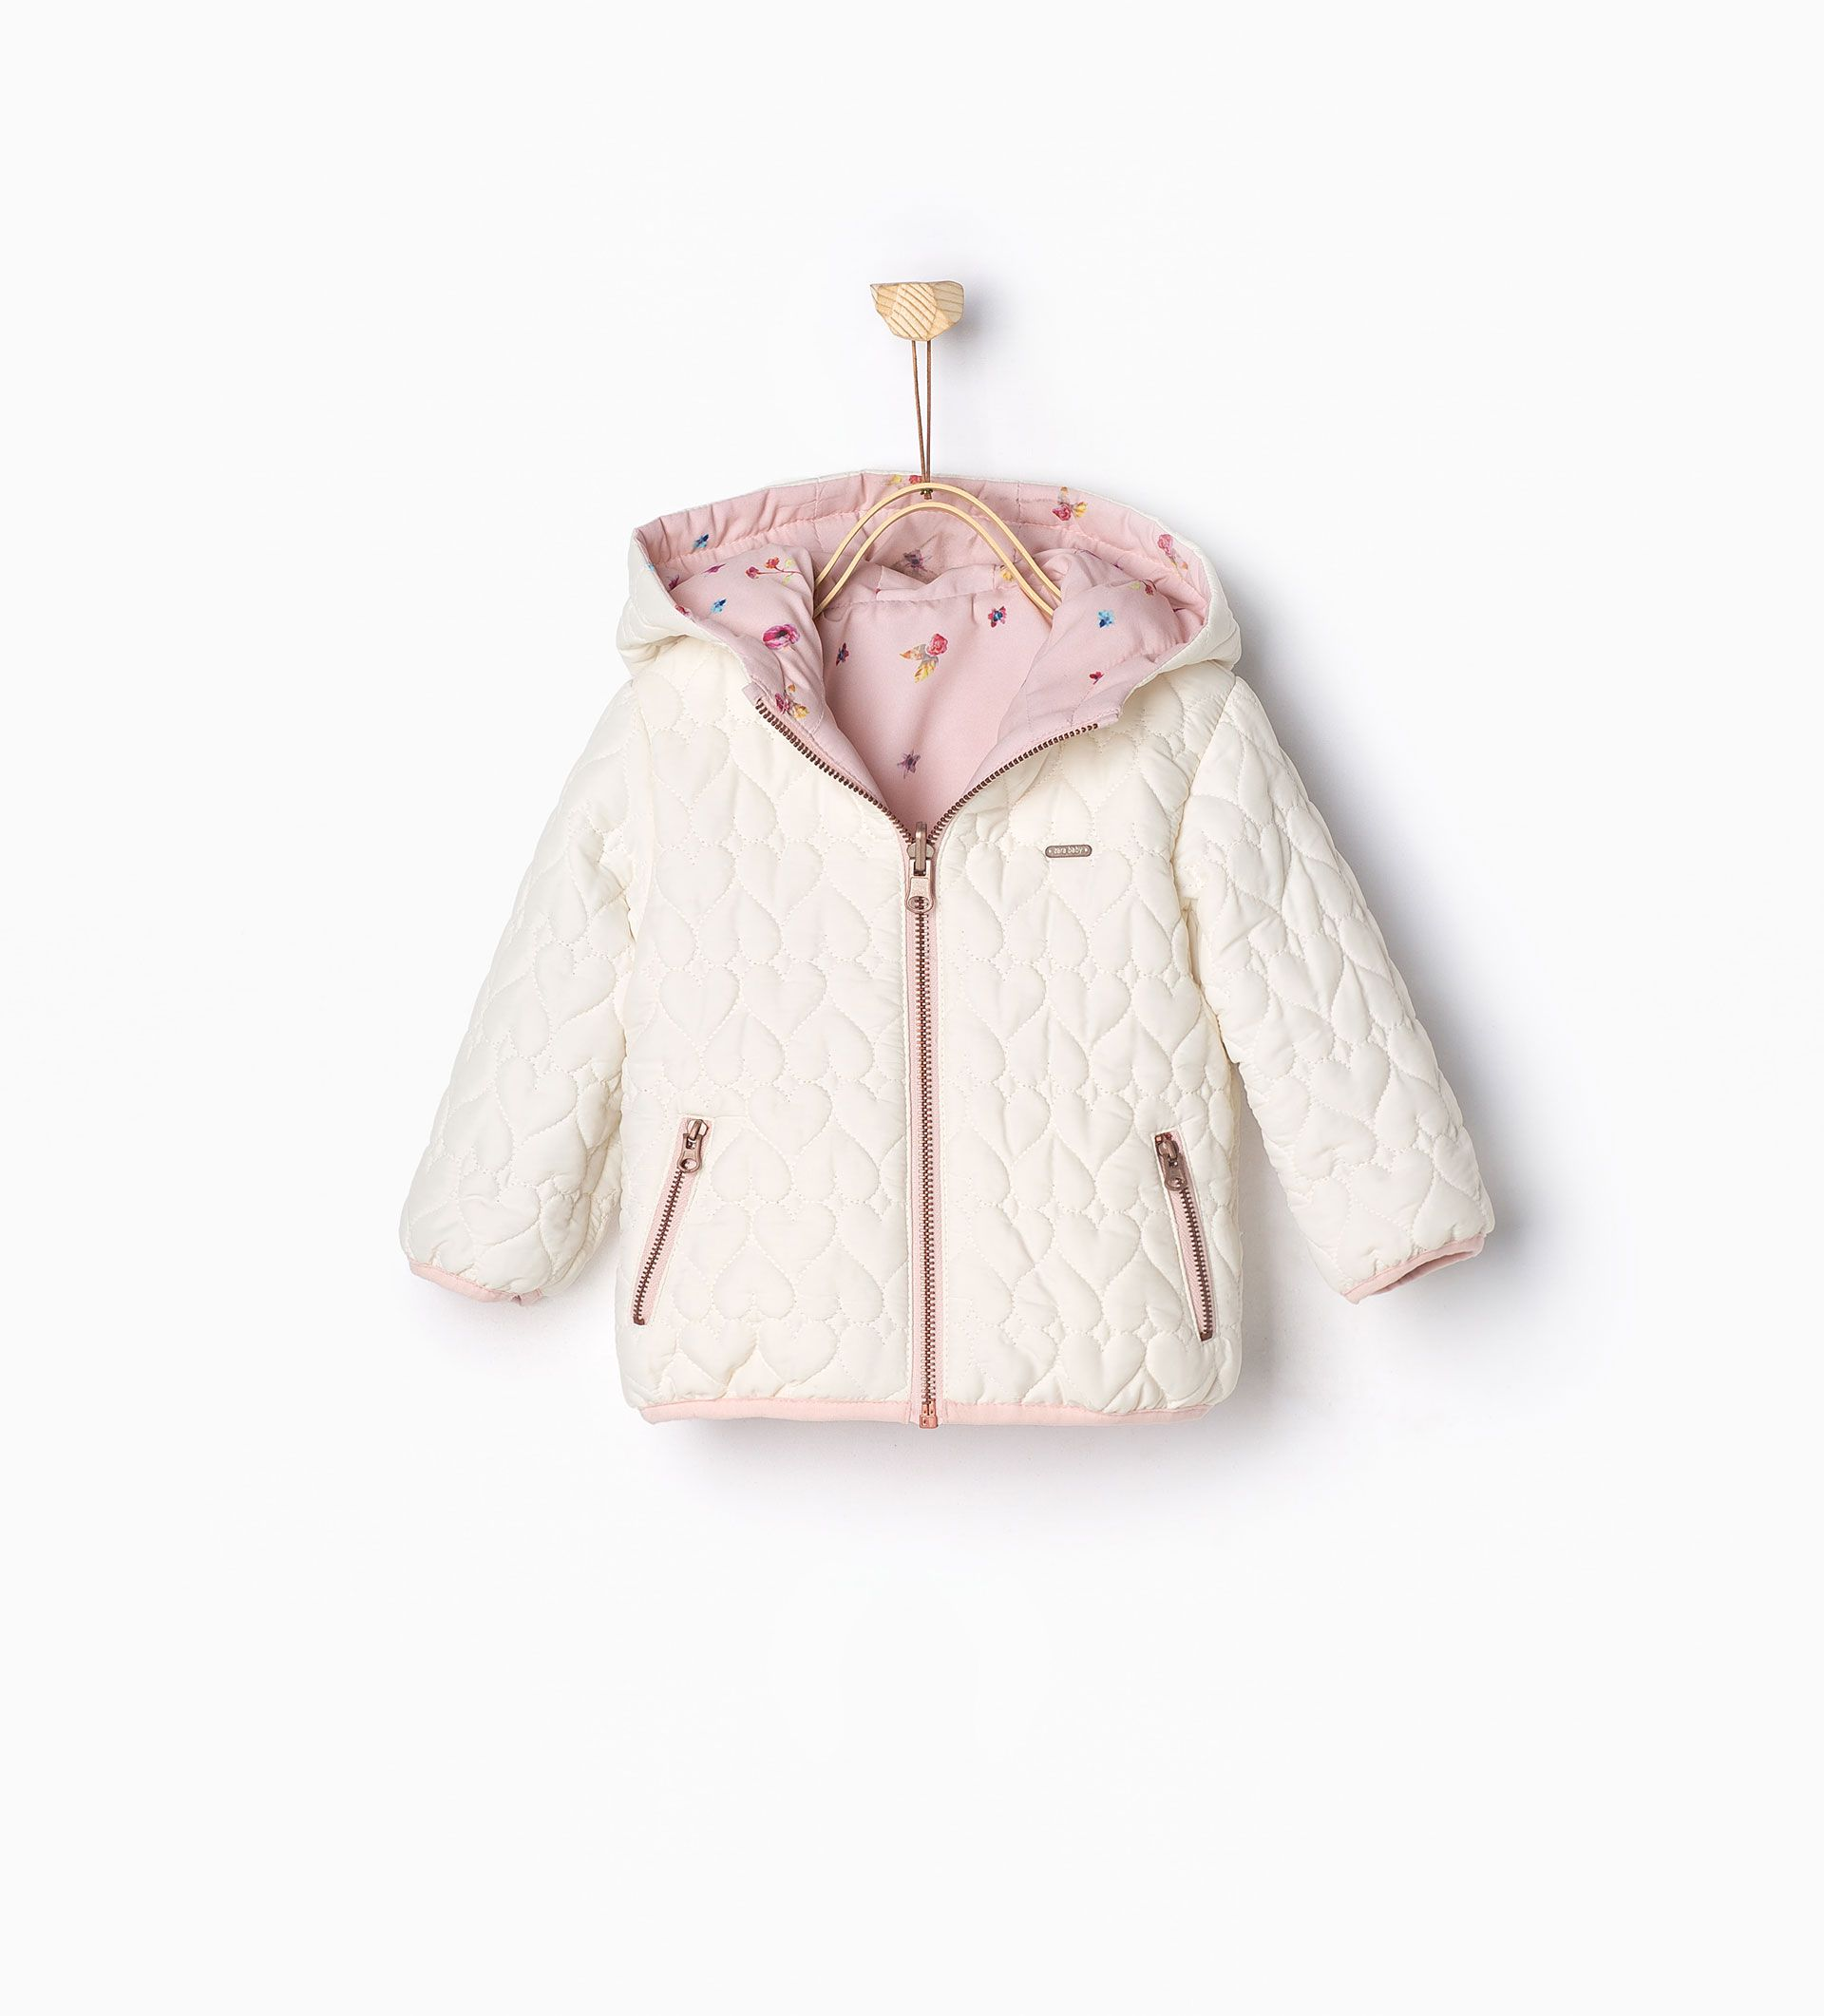 Reversible padded jacket - JACKETS - BABY GIRL | 3 months ...